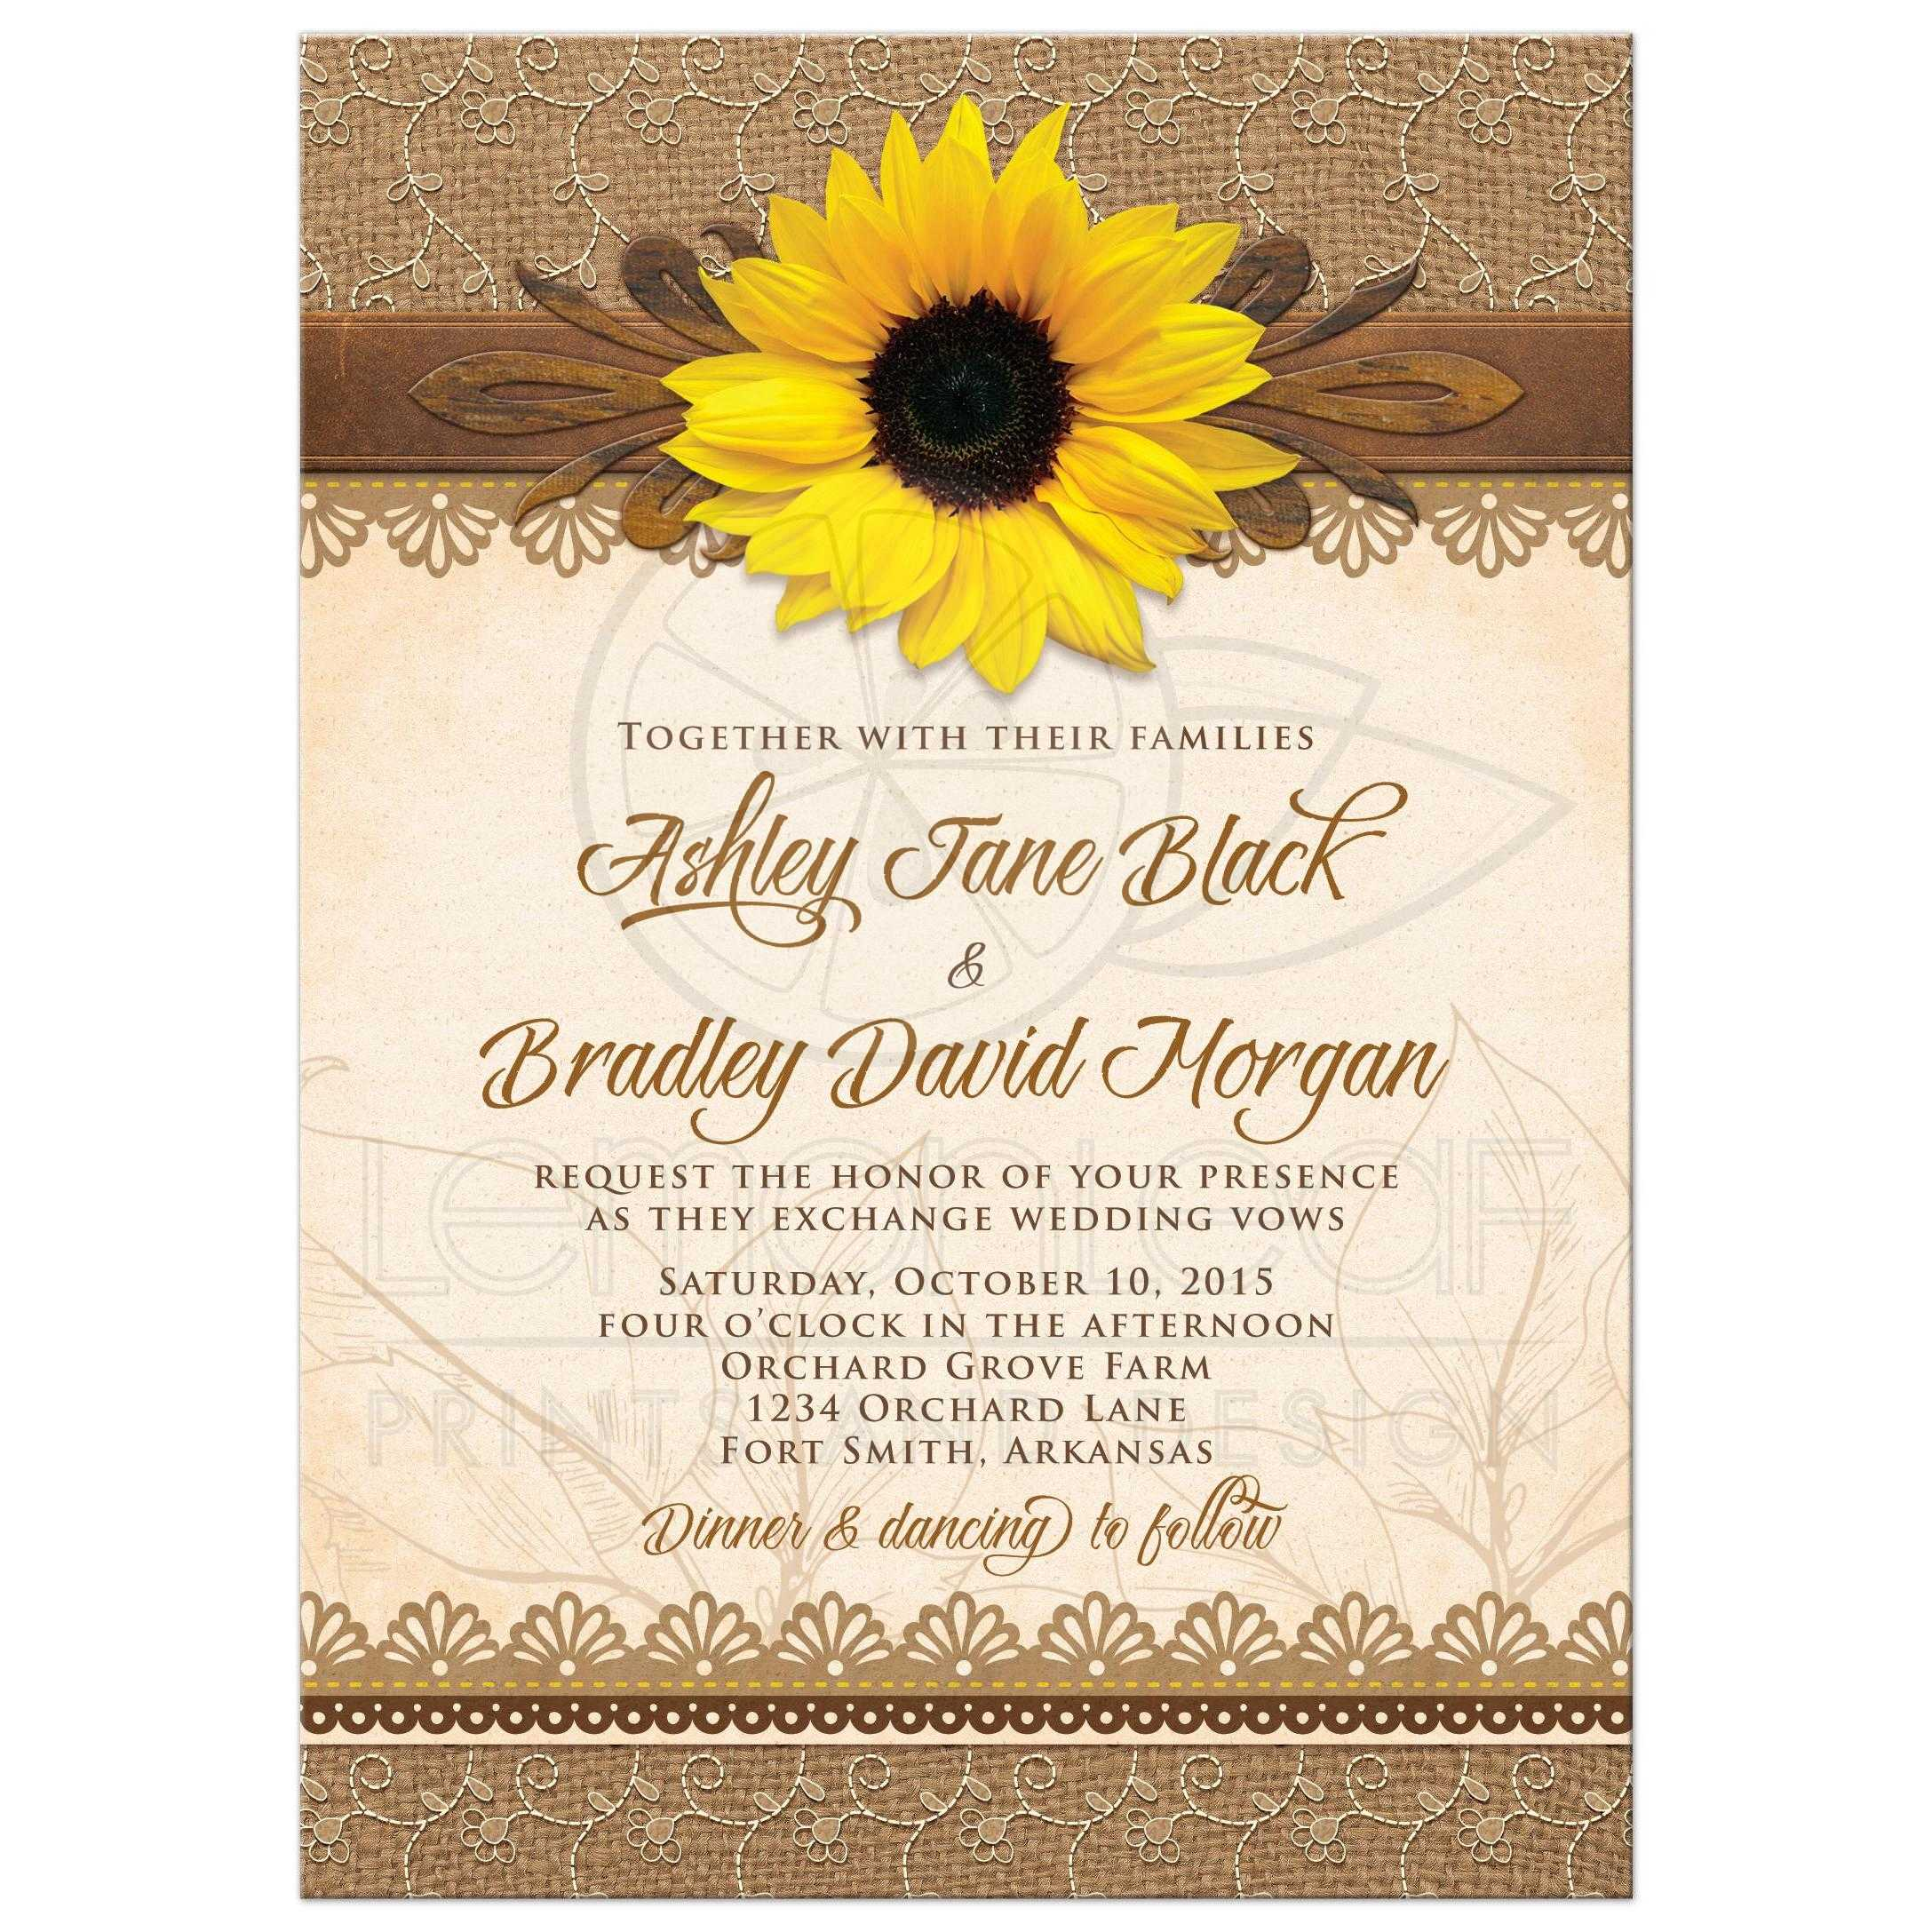 Rustic Lace, Burlap, Wood And Yellow Sunflower Country Wedding Invitation  Front ...